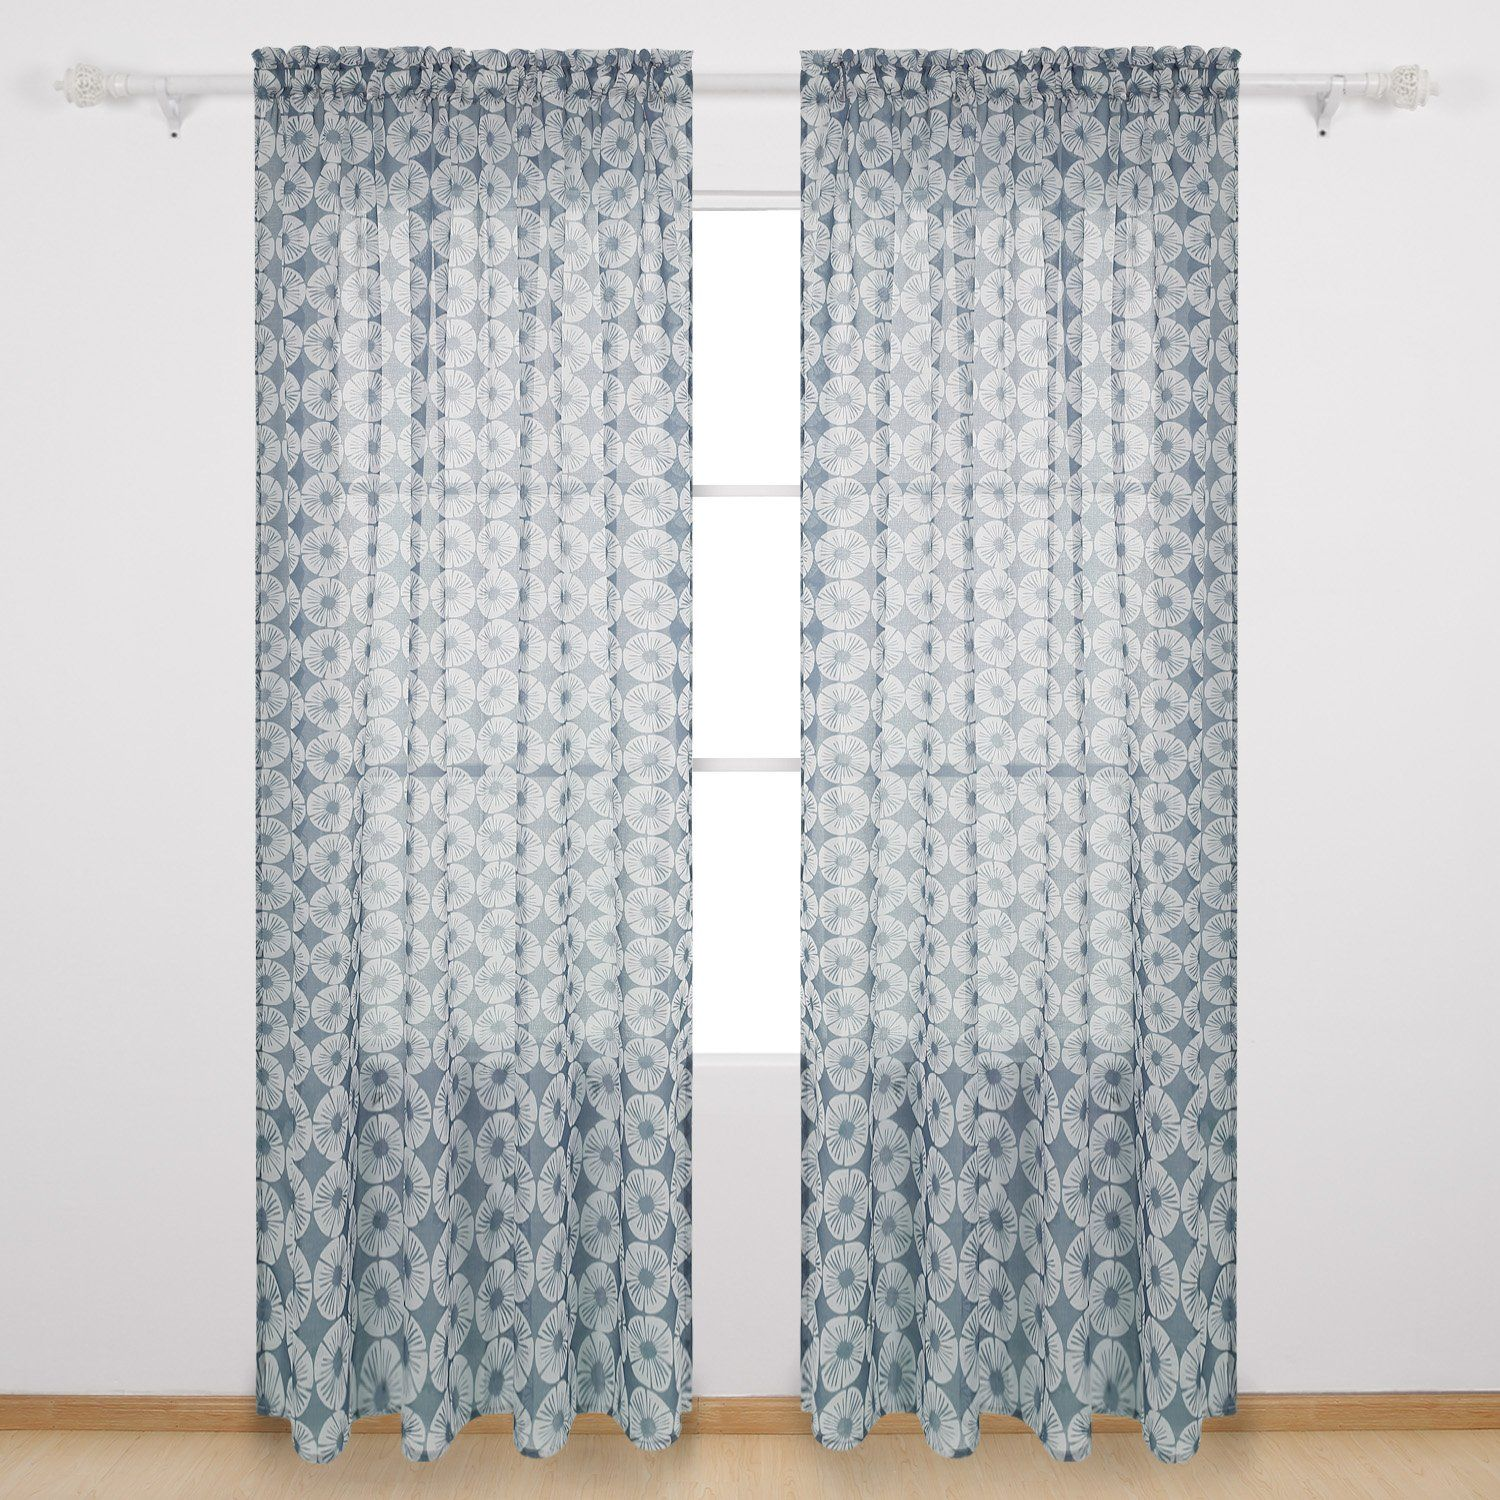 Deconovo Transparent Voile Drapes Floral Pattern Sheer Curtains